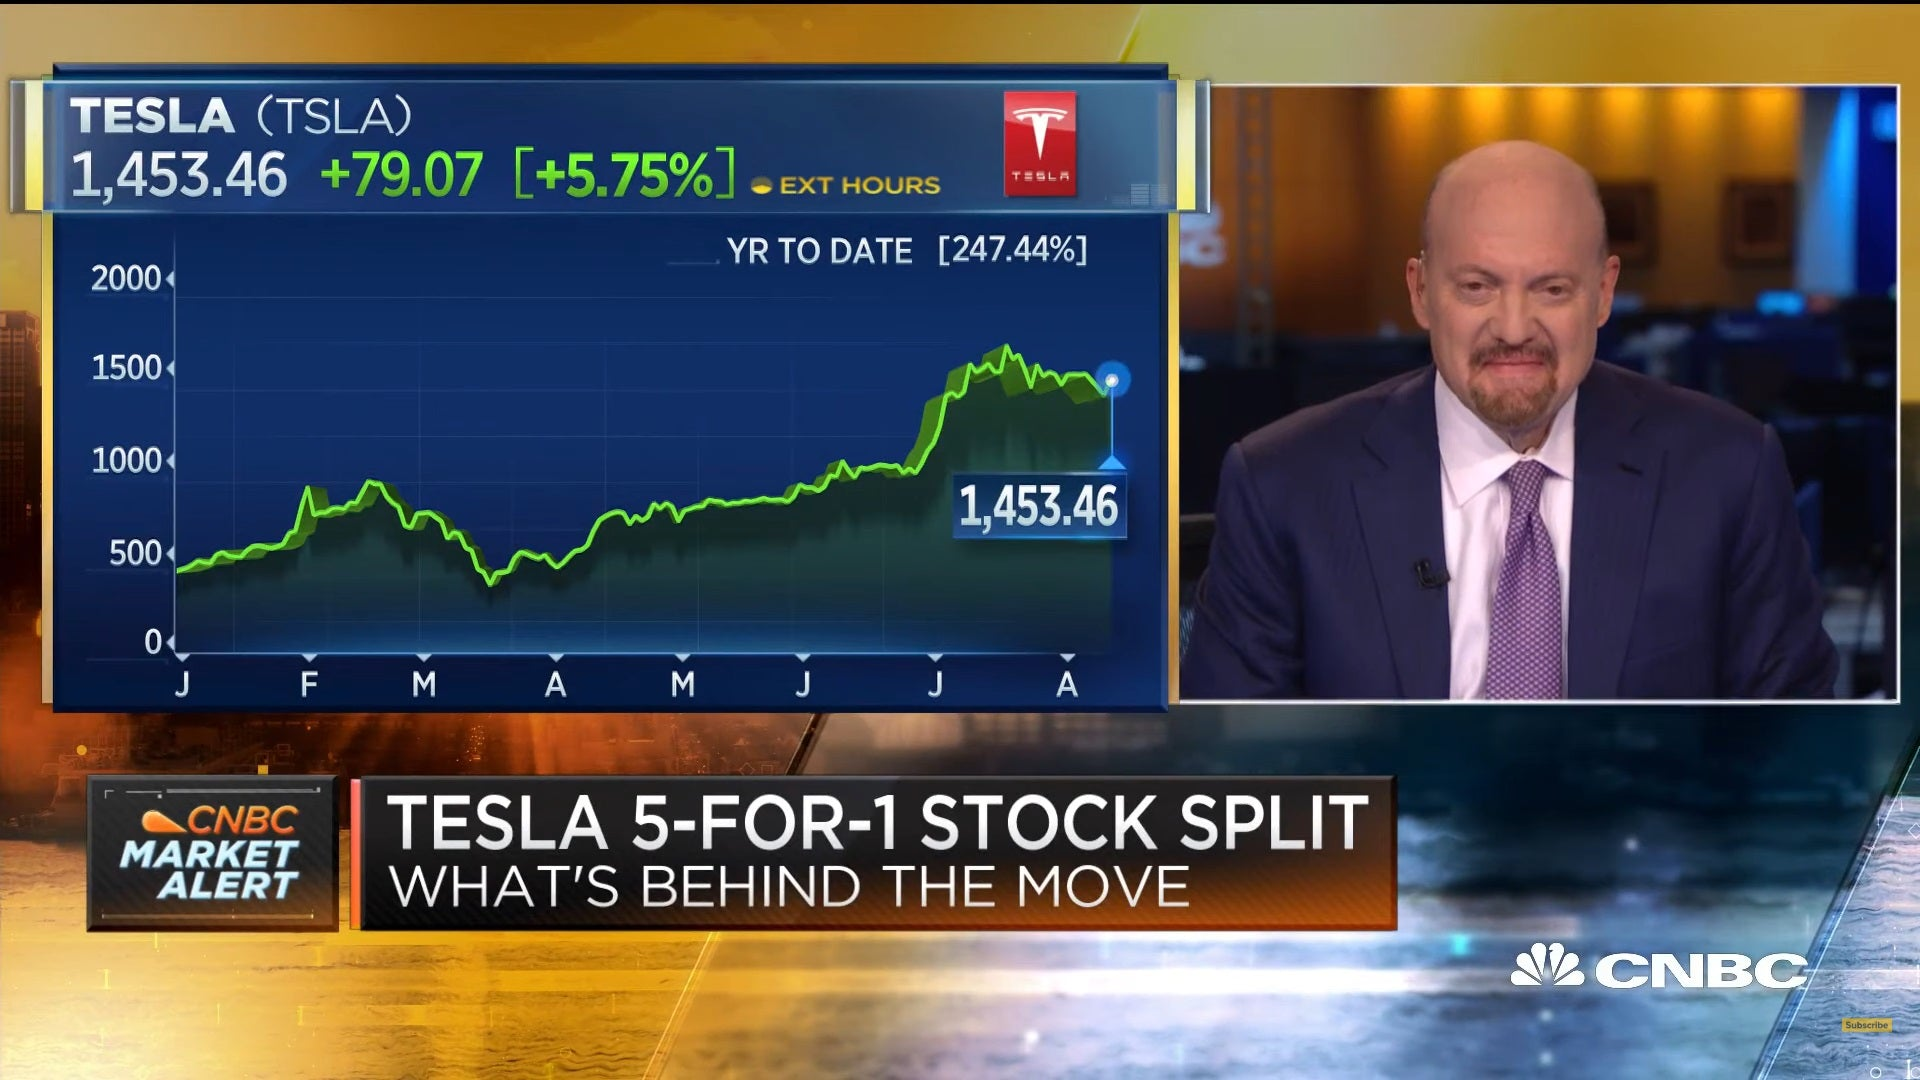 Tesla Stock (TSLA) Split a Great Opportunity for Young Investors, says Jim Cramer